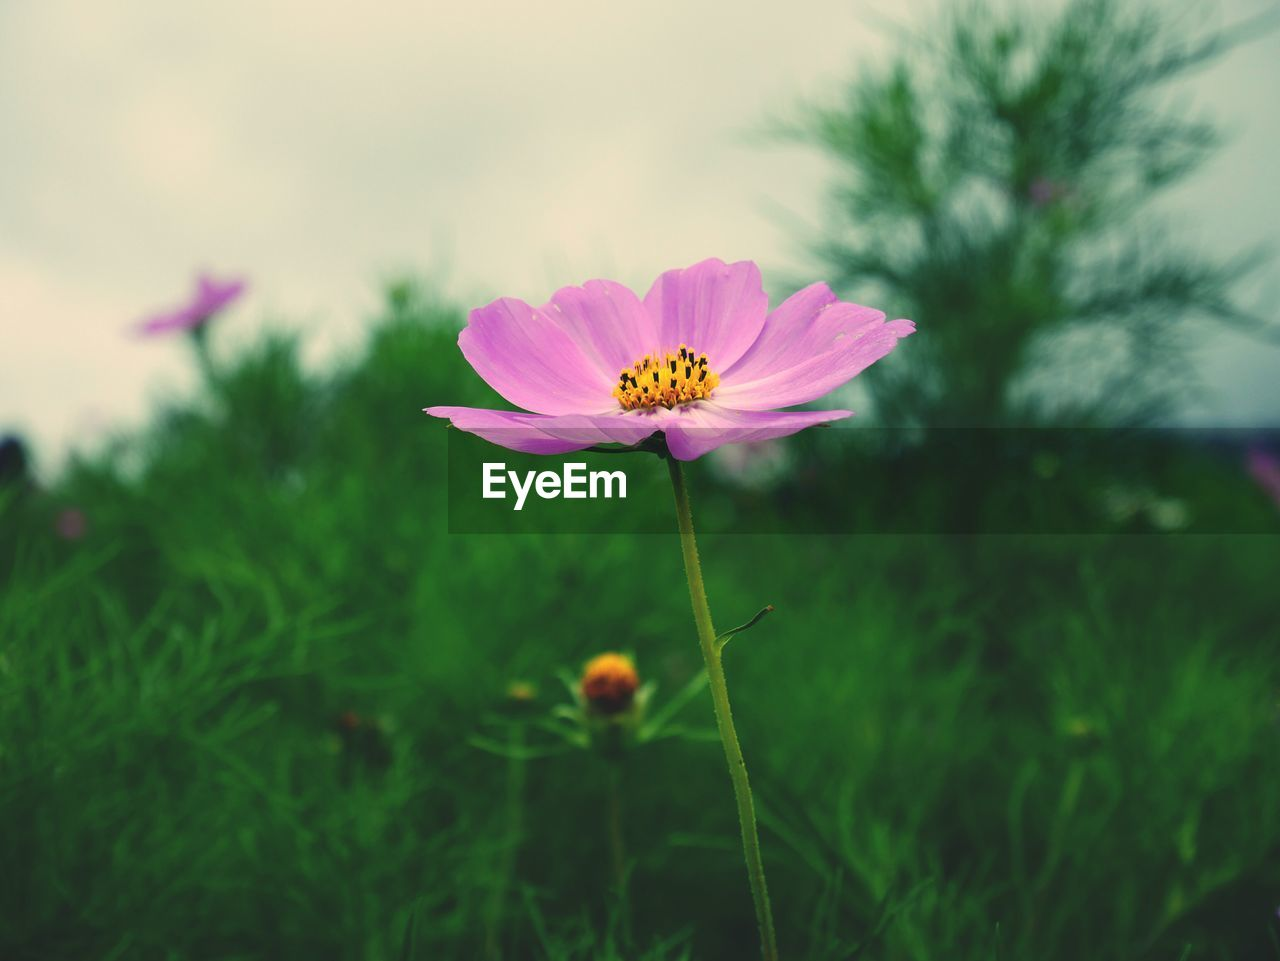 flowering plant, freshness, fragility, flower, plant, vulnerability, petal, beauty in nature, flower head, inflorescence, growth, close-up, cosmos flower, focus on foreground, nature, pink color, pollen, plant stem, no people, outdoors, sepal